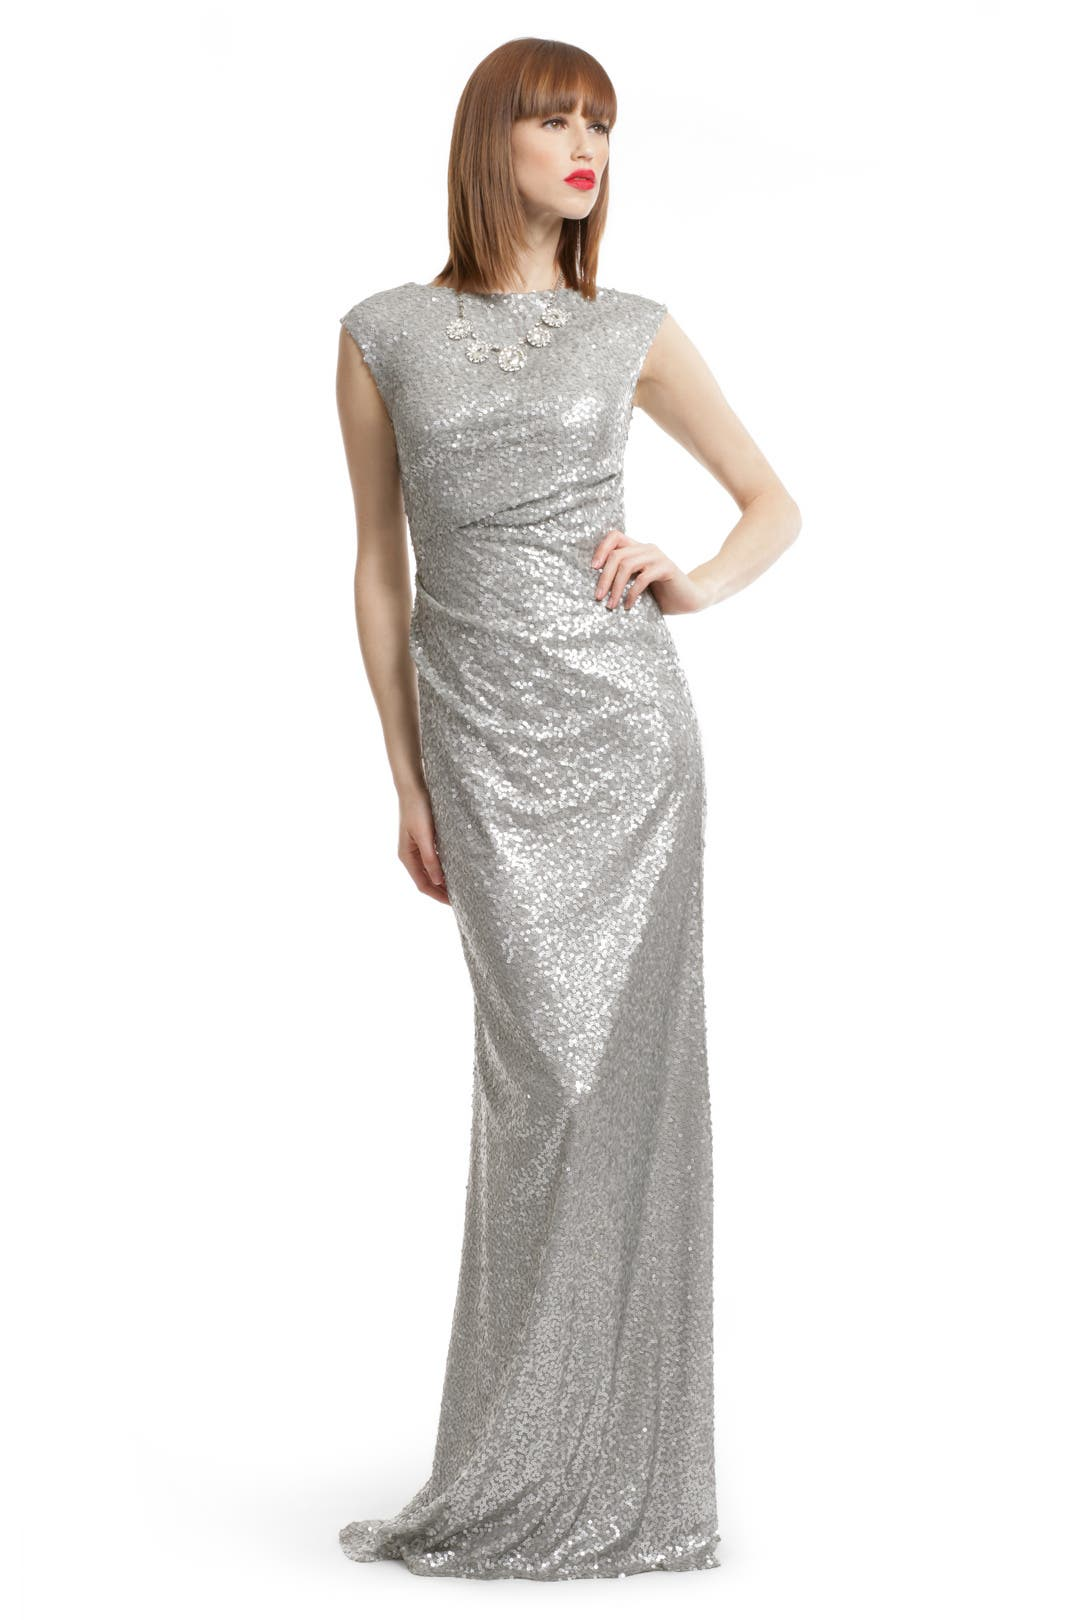 Silver Sequin Shine Gown by David Meister for $49 | Rent the Runway